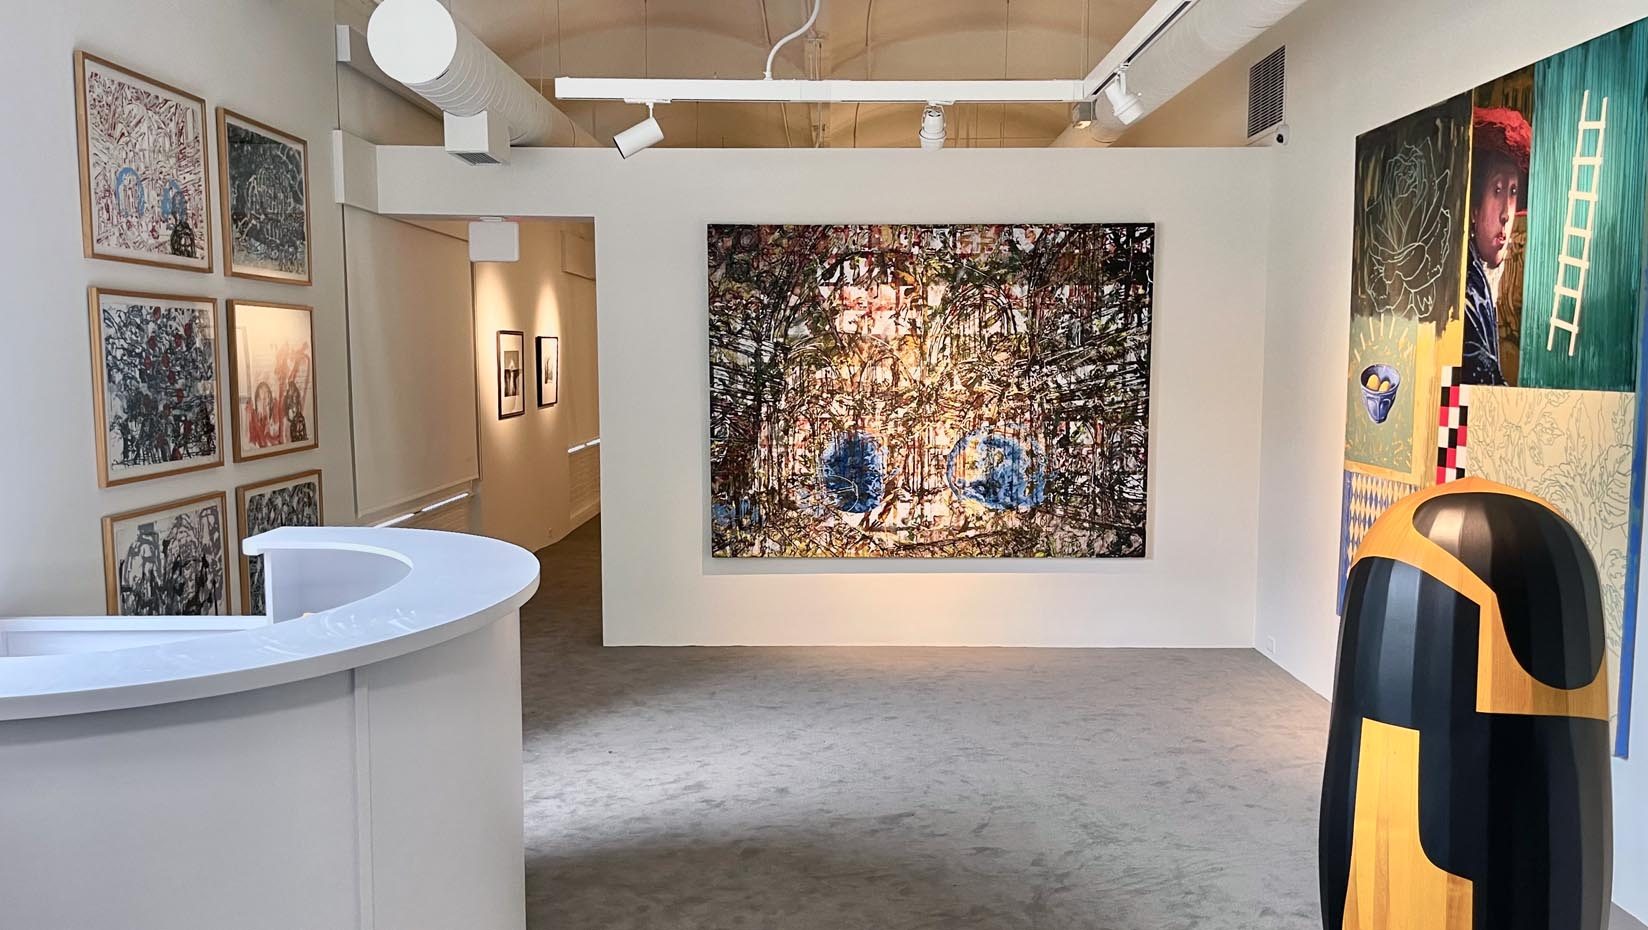 A gallery in the Zillman Art Museum